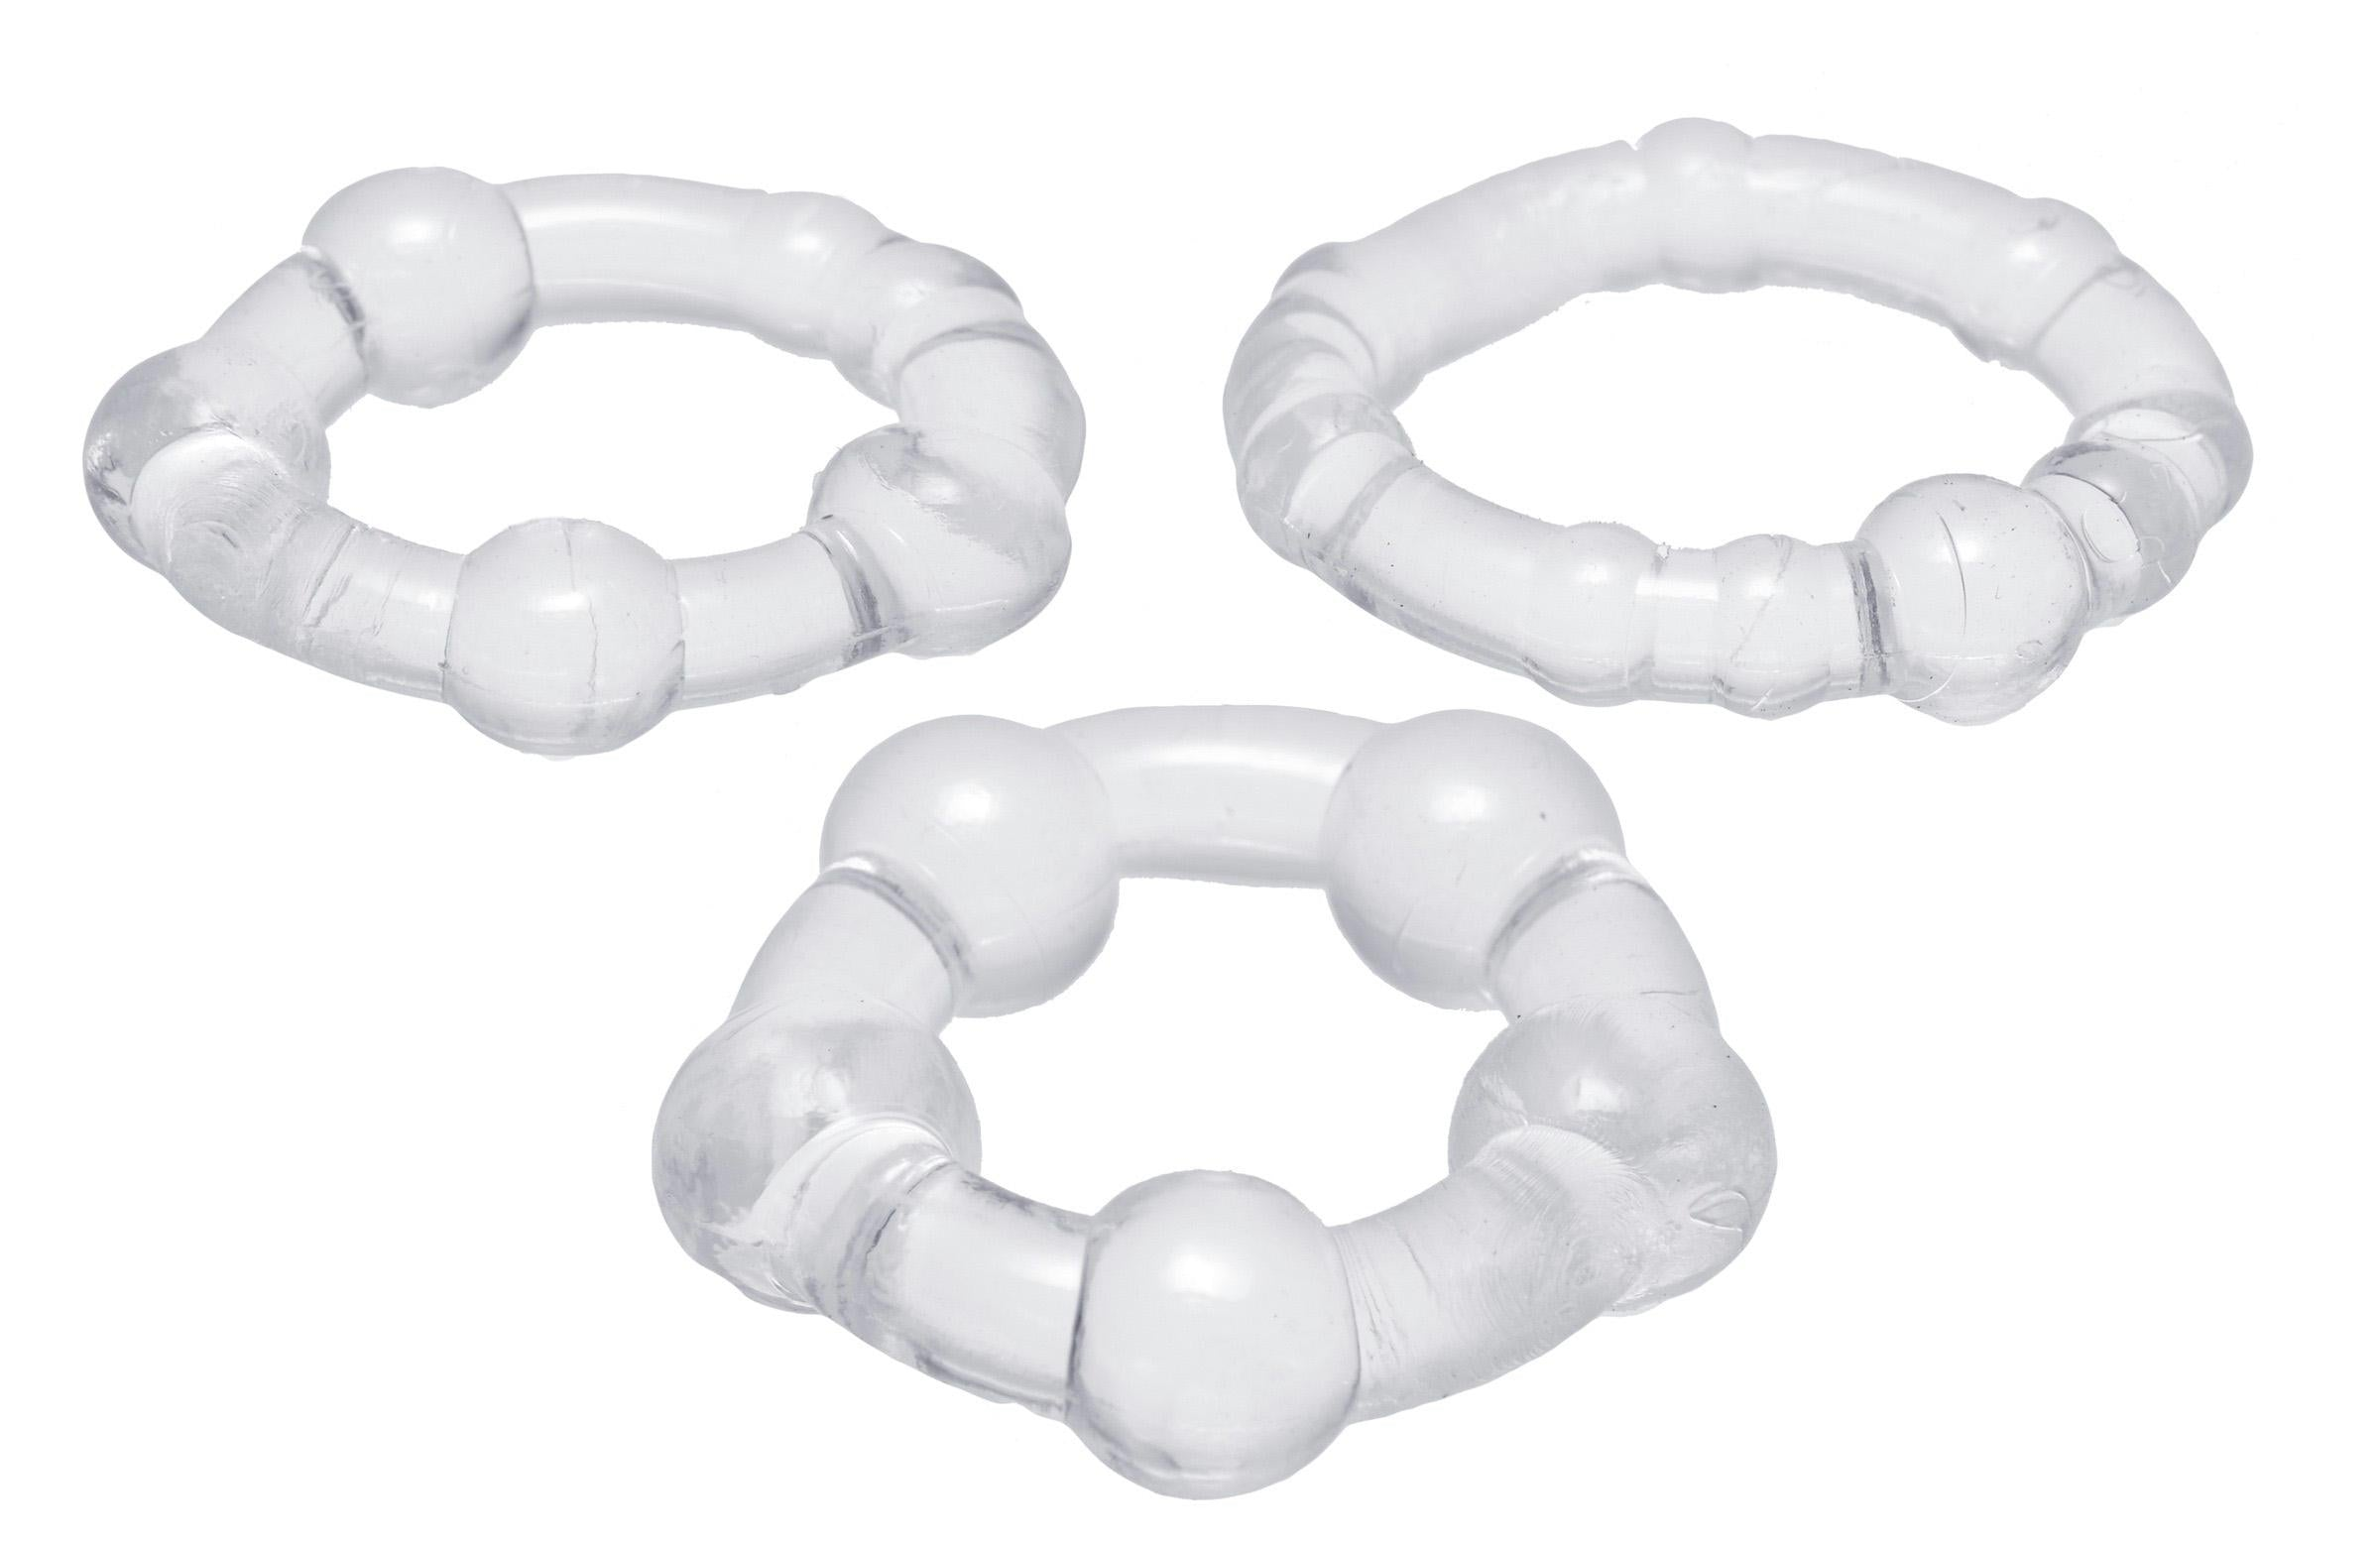 Clear Performance Erection Rings